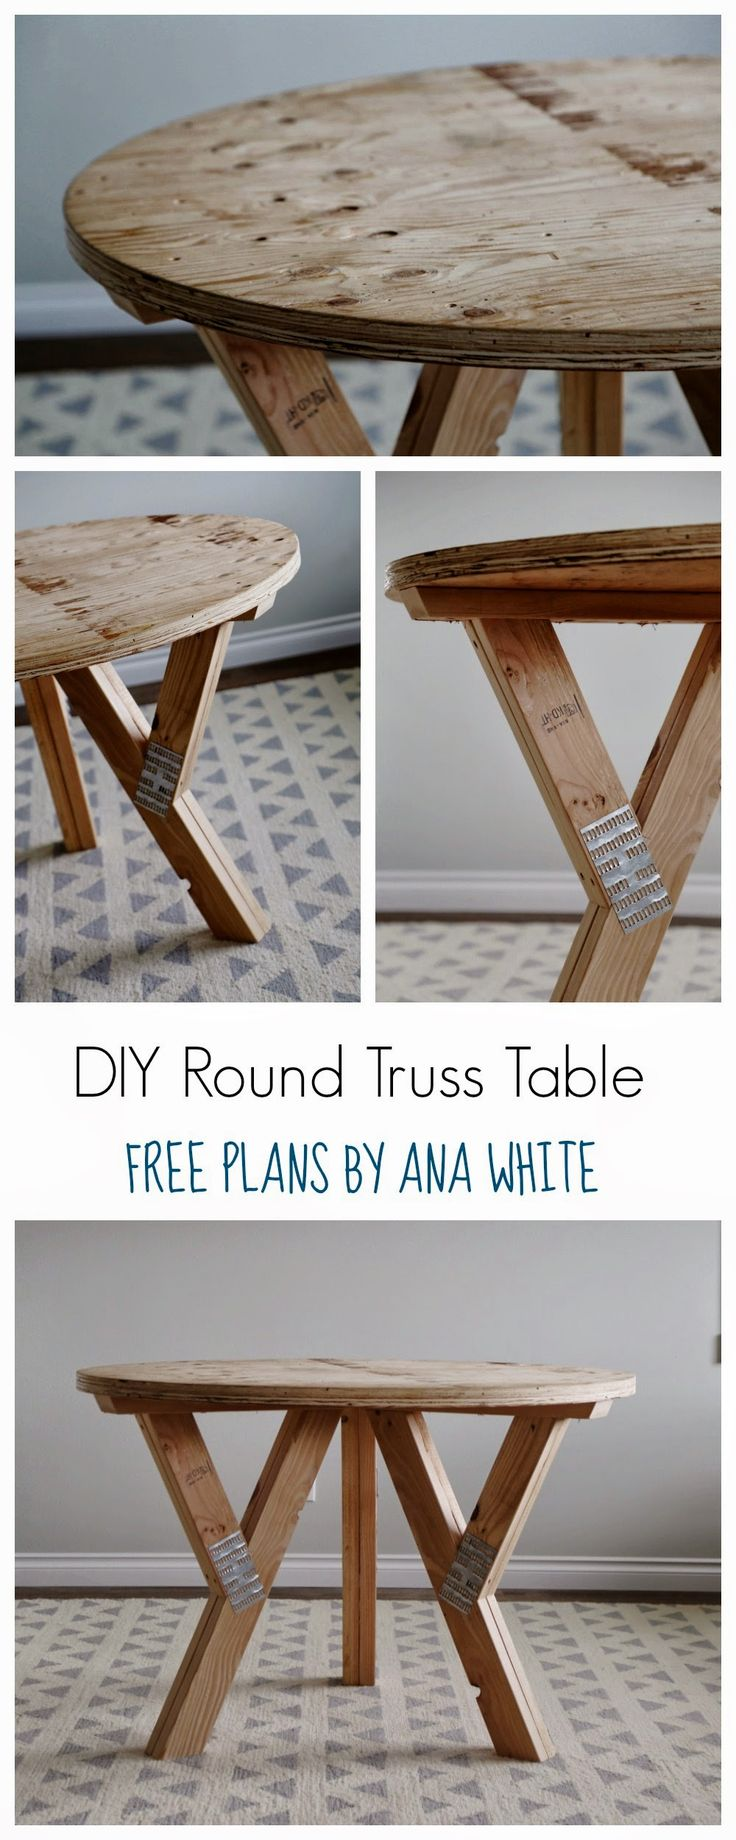 78 Best images about Dining Room Tutorials on Pinterest